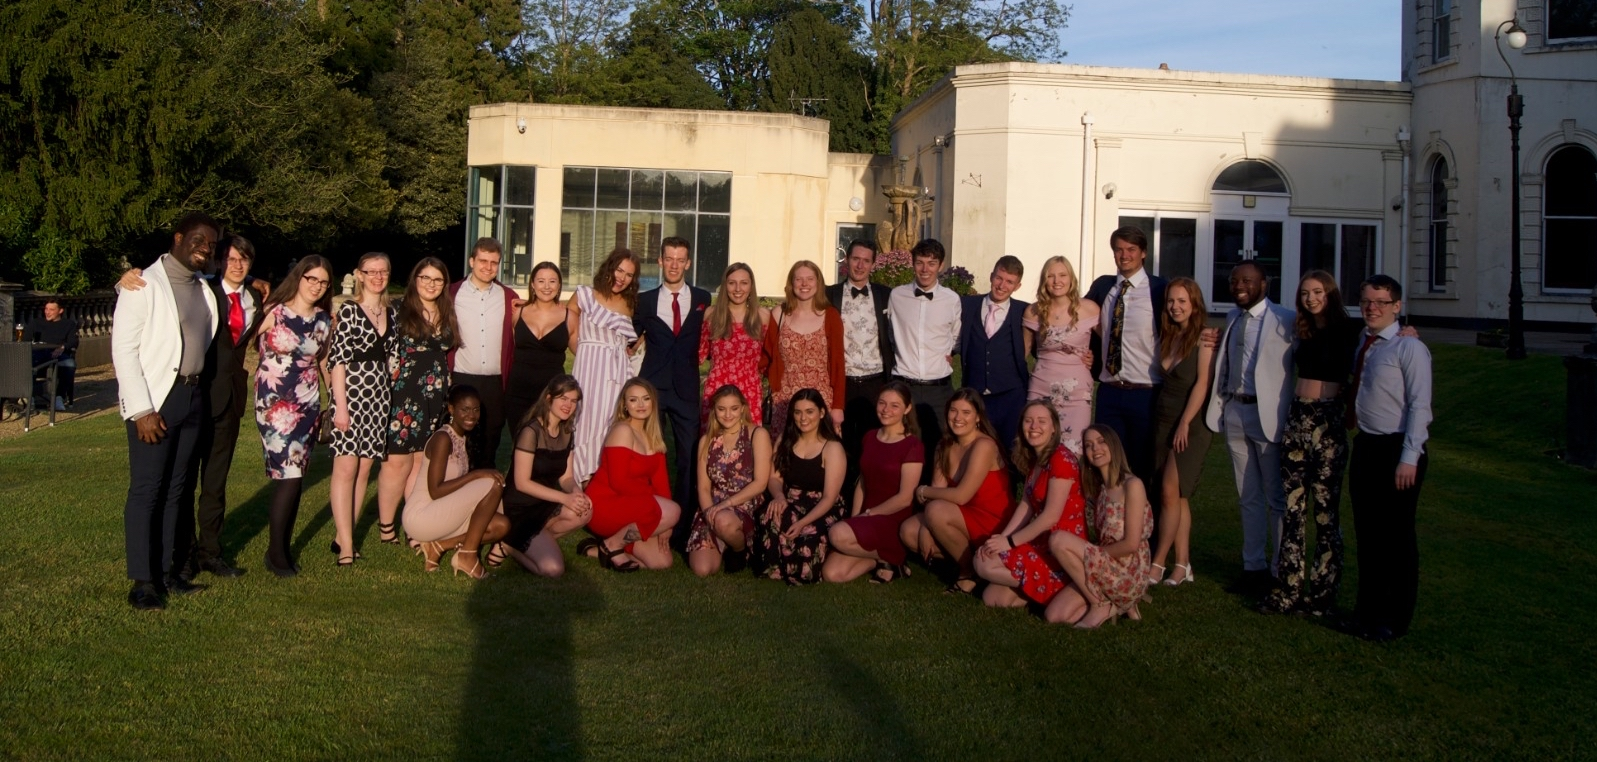 Jazzmanix Murder Mystery Themed Summer Ball